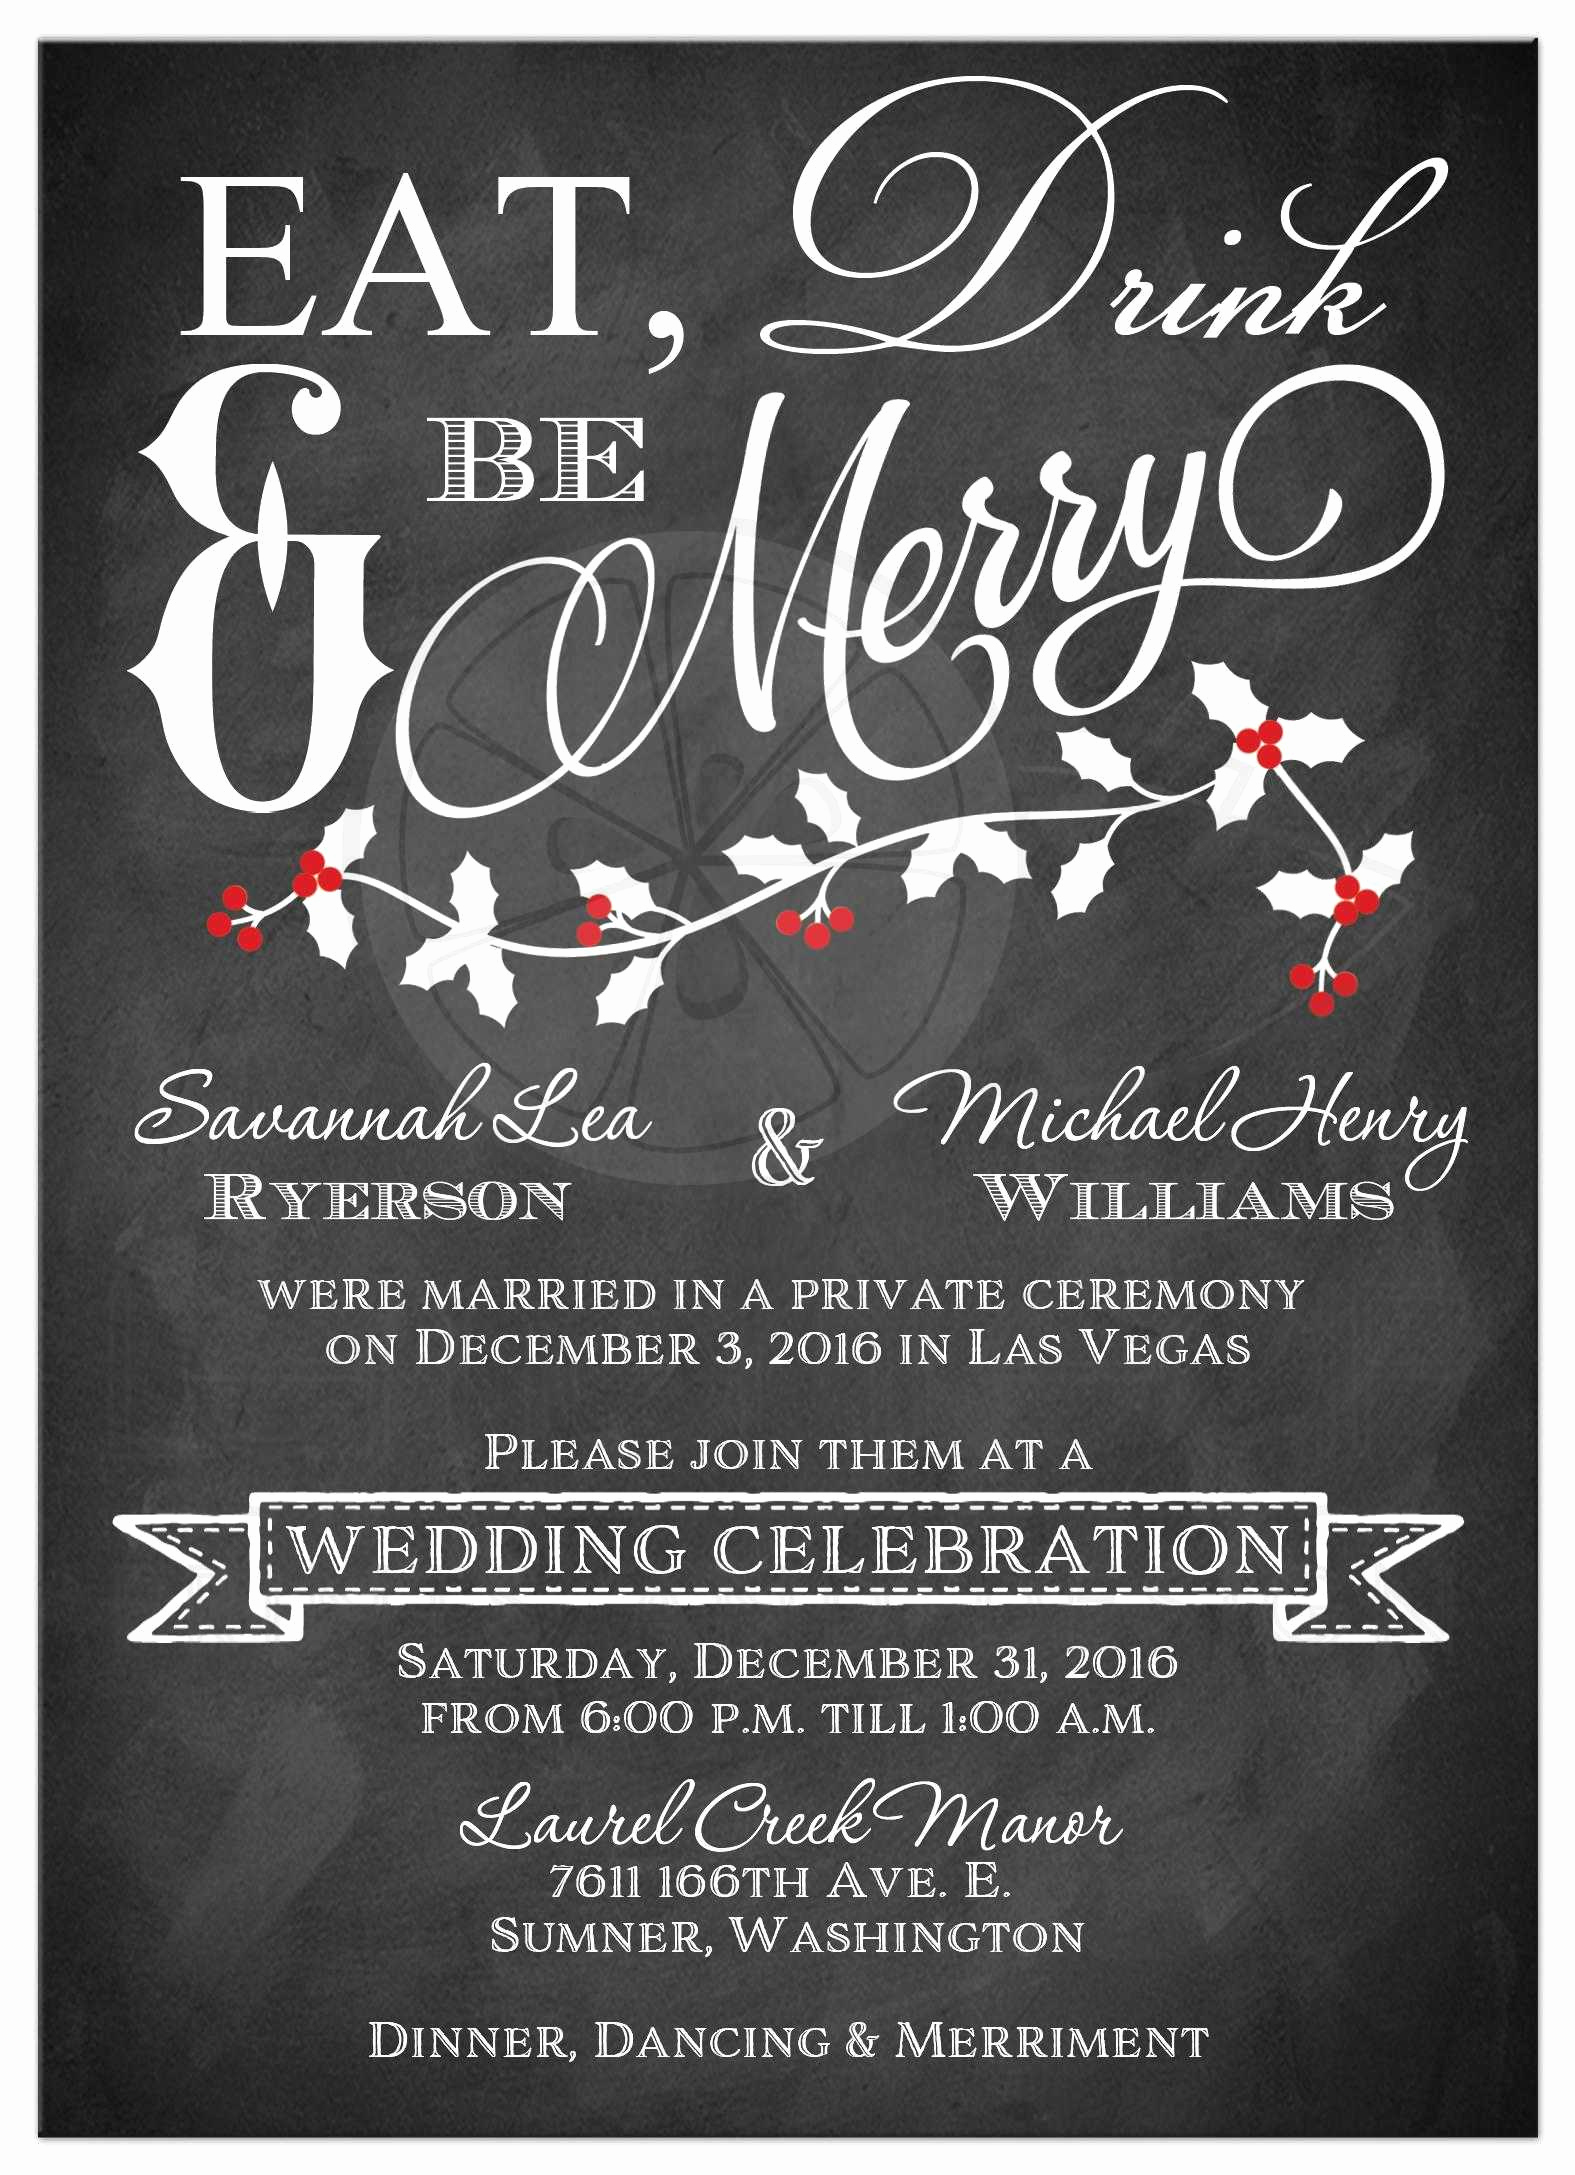 winter wedding reception invitation eat drink and be merry faux chalkboard holly leaves and berries